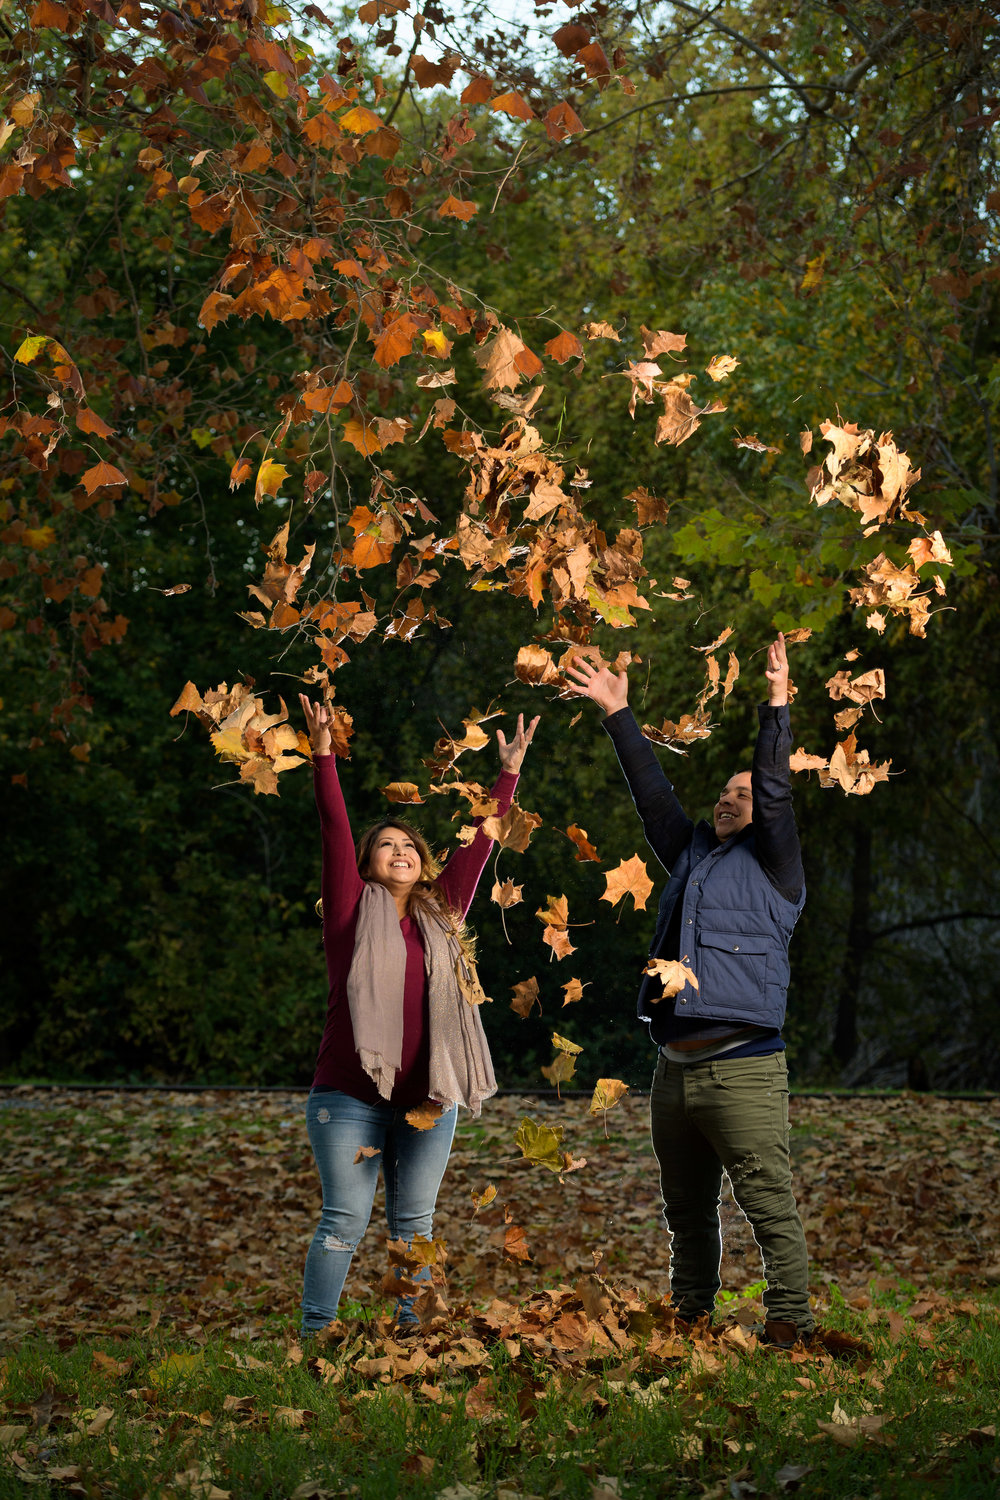 Throwing fall leaves in the air - Vasona Park Maternity Photography – by Bay Area portrait photographer Chris Schmauch